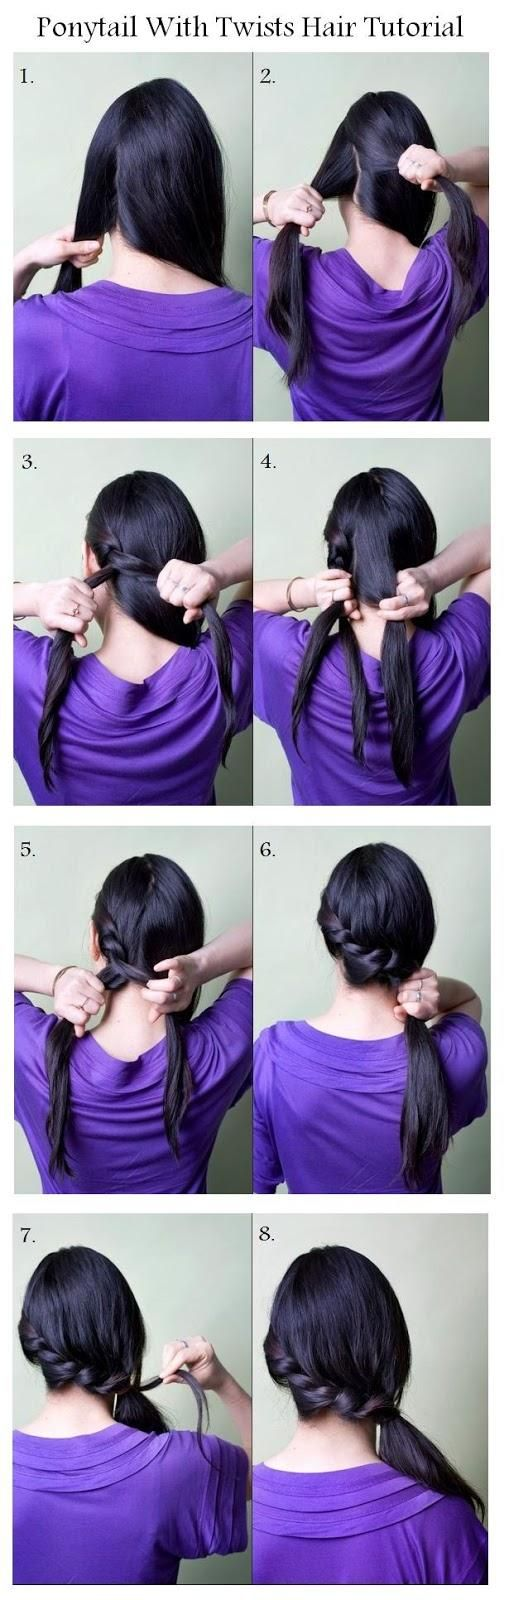 DIY Wedding Hair : DIY Make A Ponytail With Twists For Your Hair